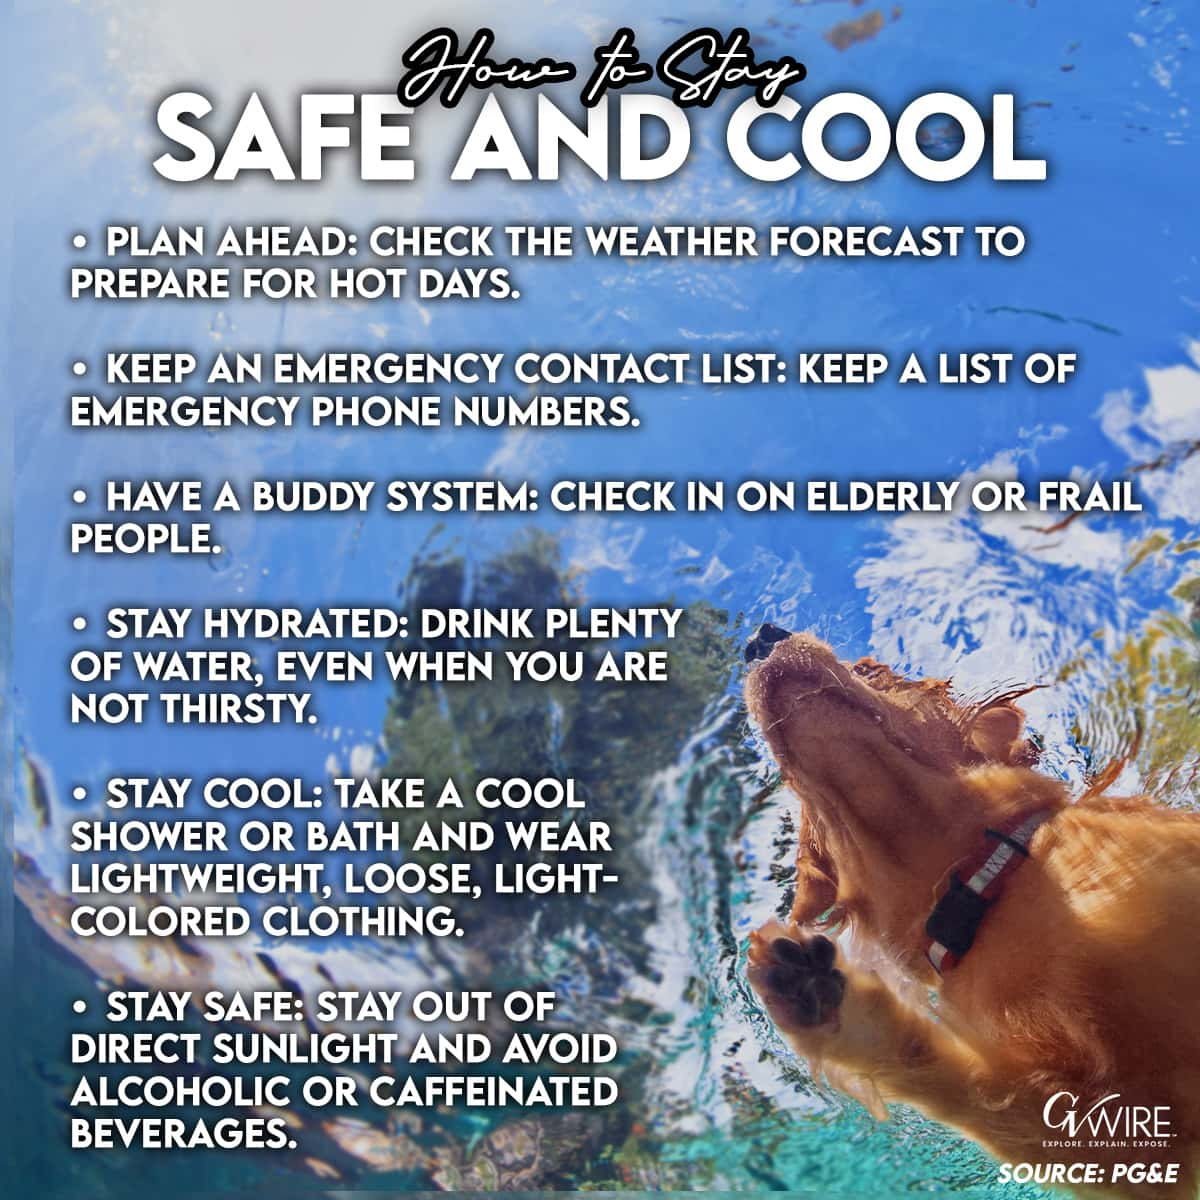 Tips on staying safe and cool during a heatwavean